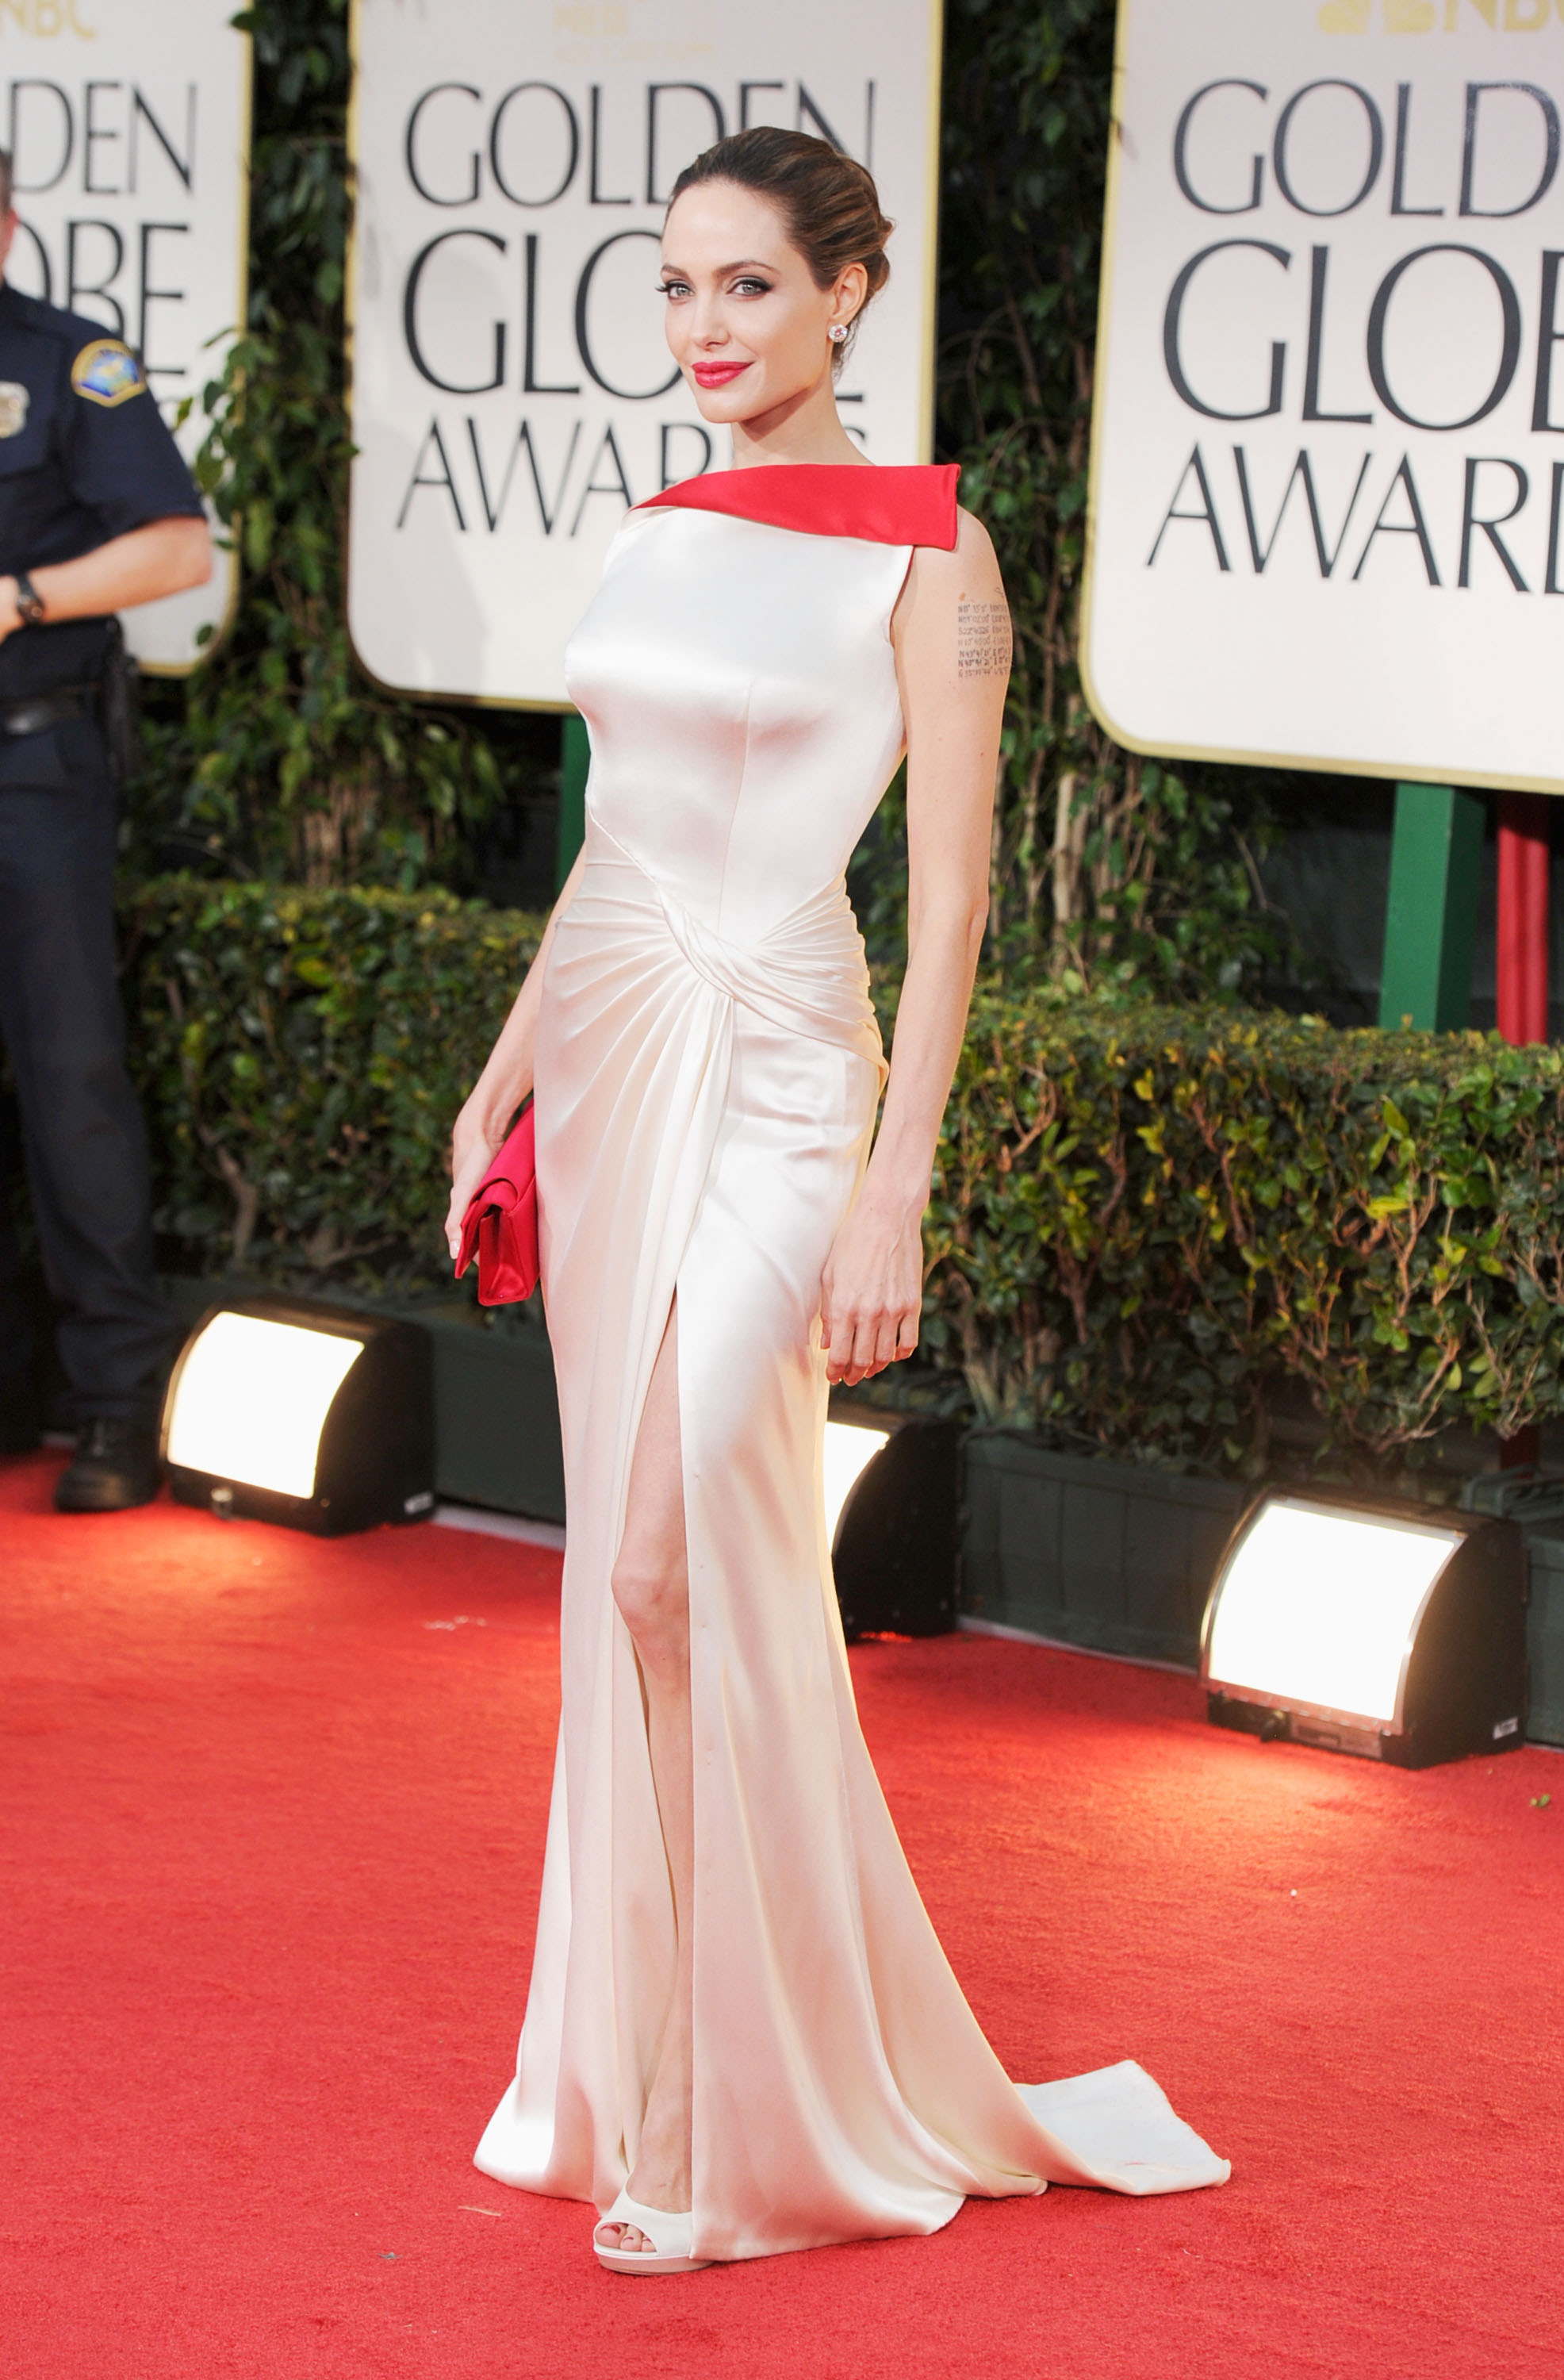 Angelina Jolie in Versace at the Golden Globes.